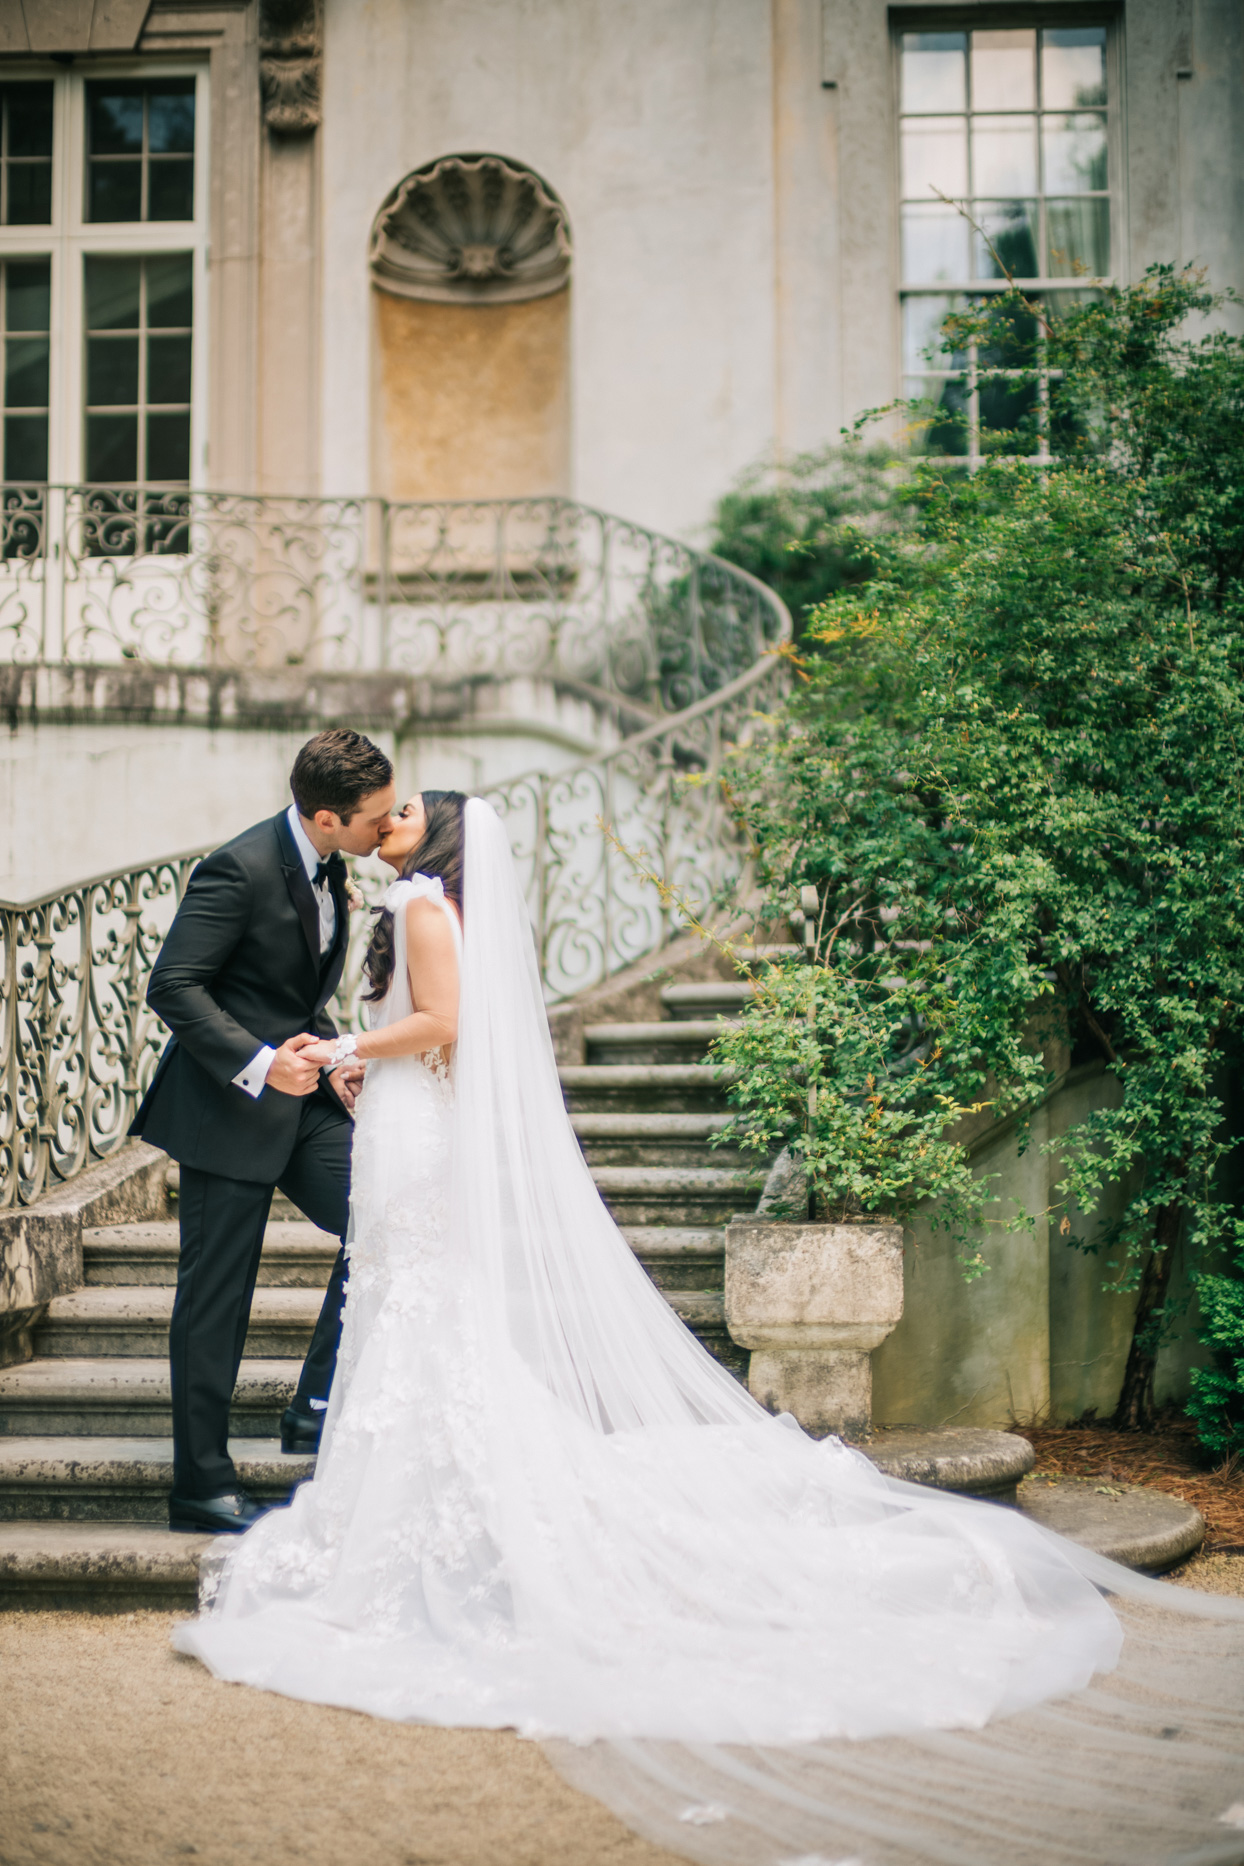 bride and groom kissing on stairs of wedding venue